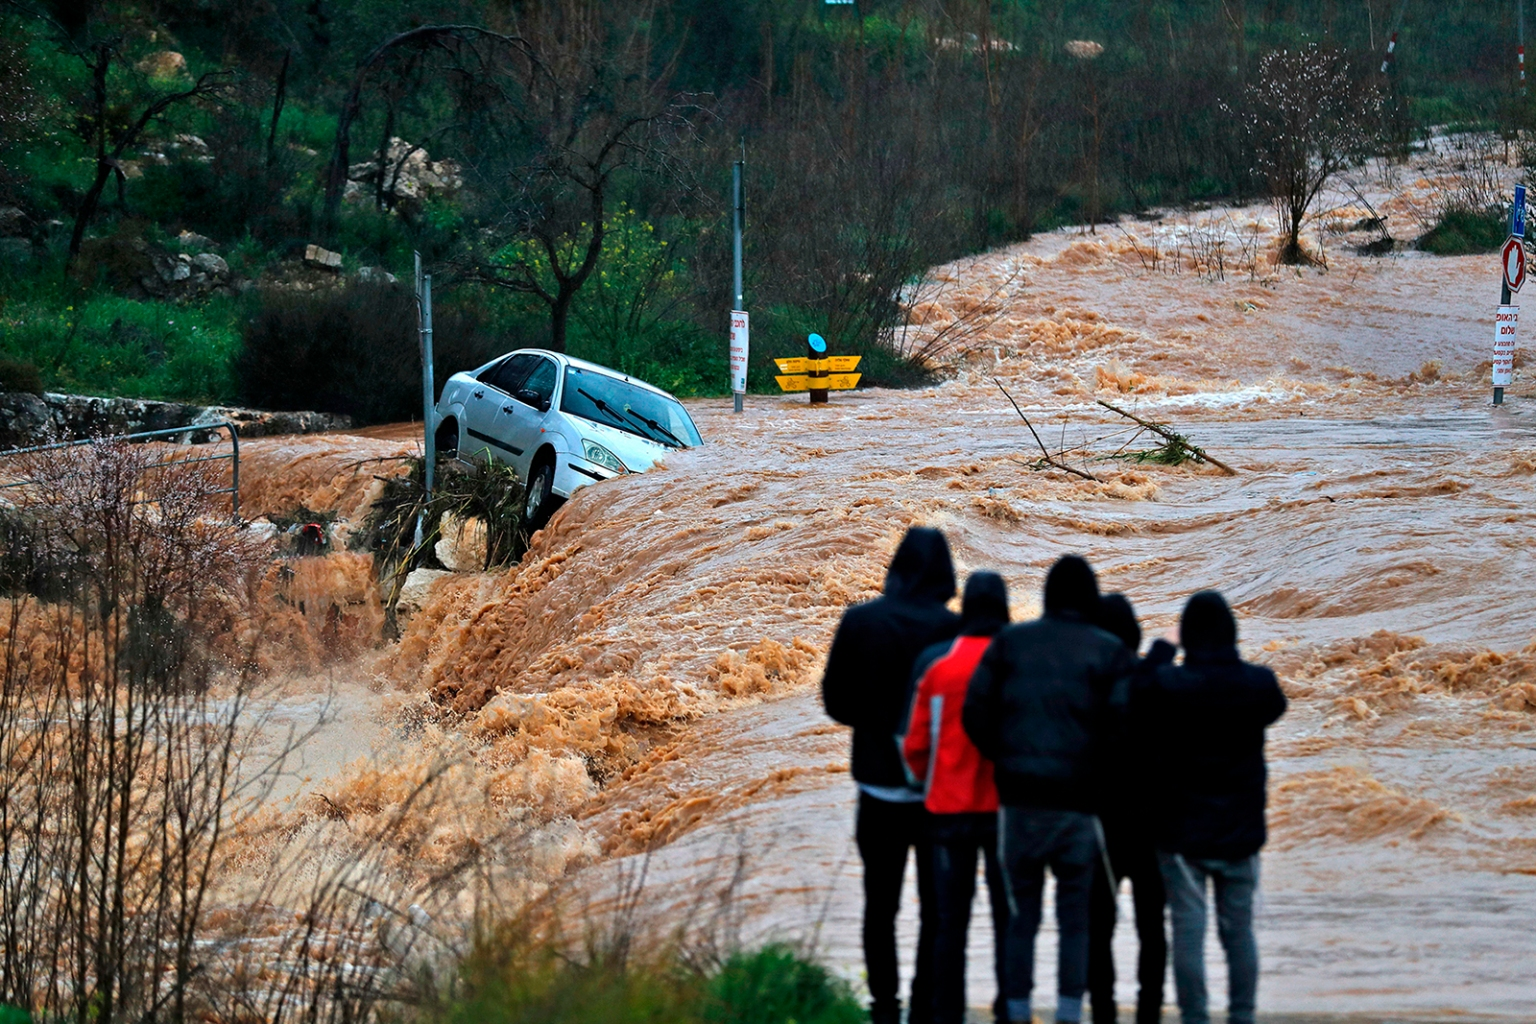 Flash floods caused by torrential rain go down a street on the outskirts of Jerusalem on Feb. 28. AHMAD GHARABLI/AFP/Getty Images